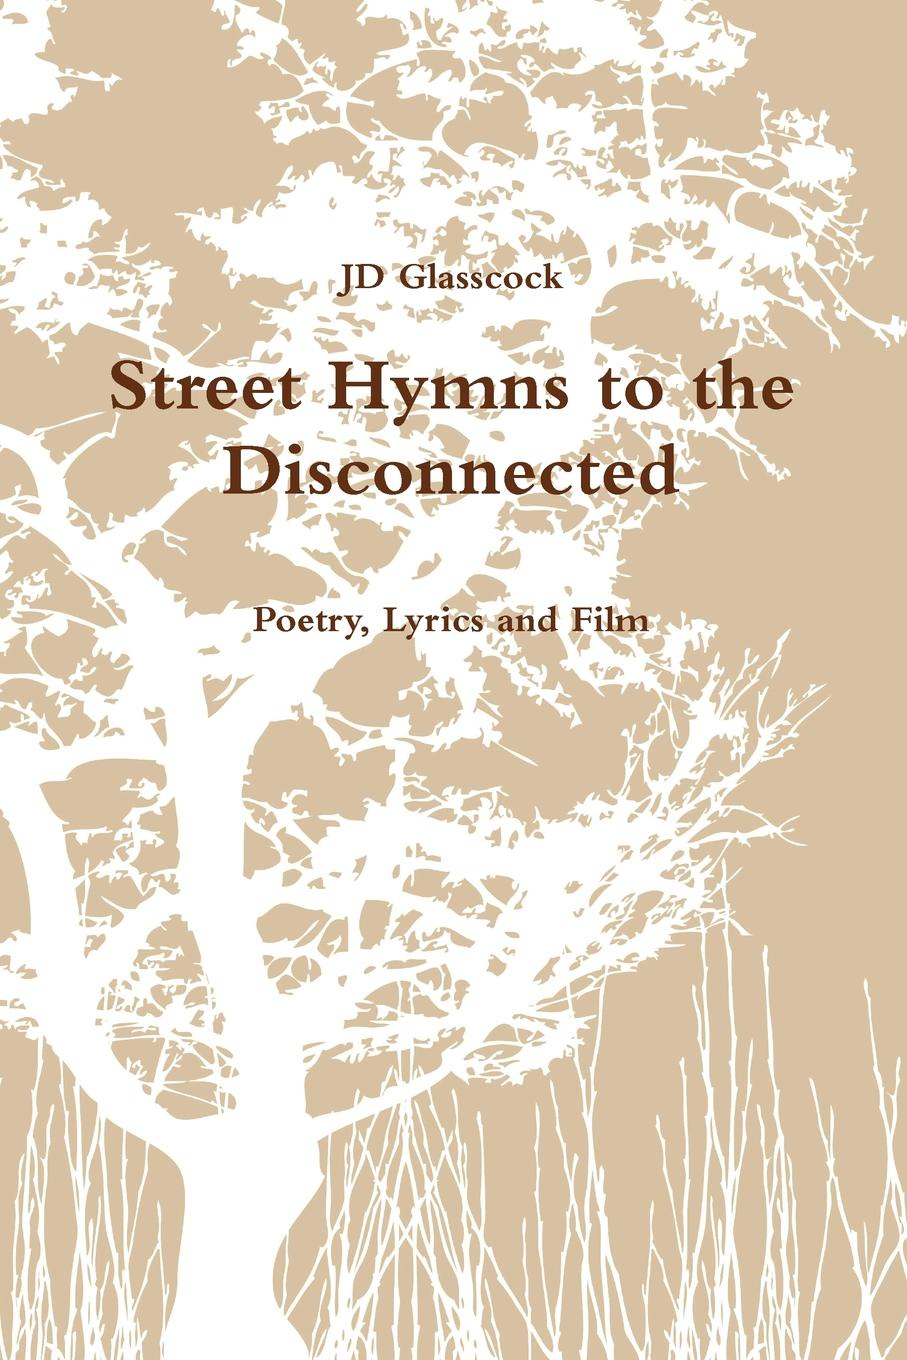 цена JD Glasscock Street Hymns to the Disconnected в интернет-магазинах